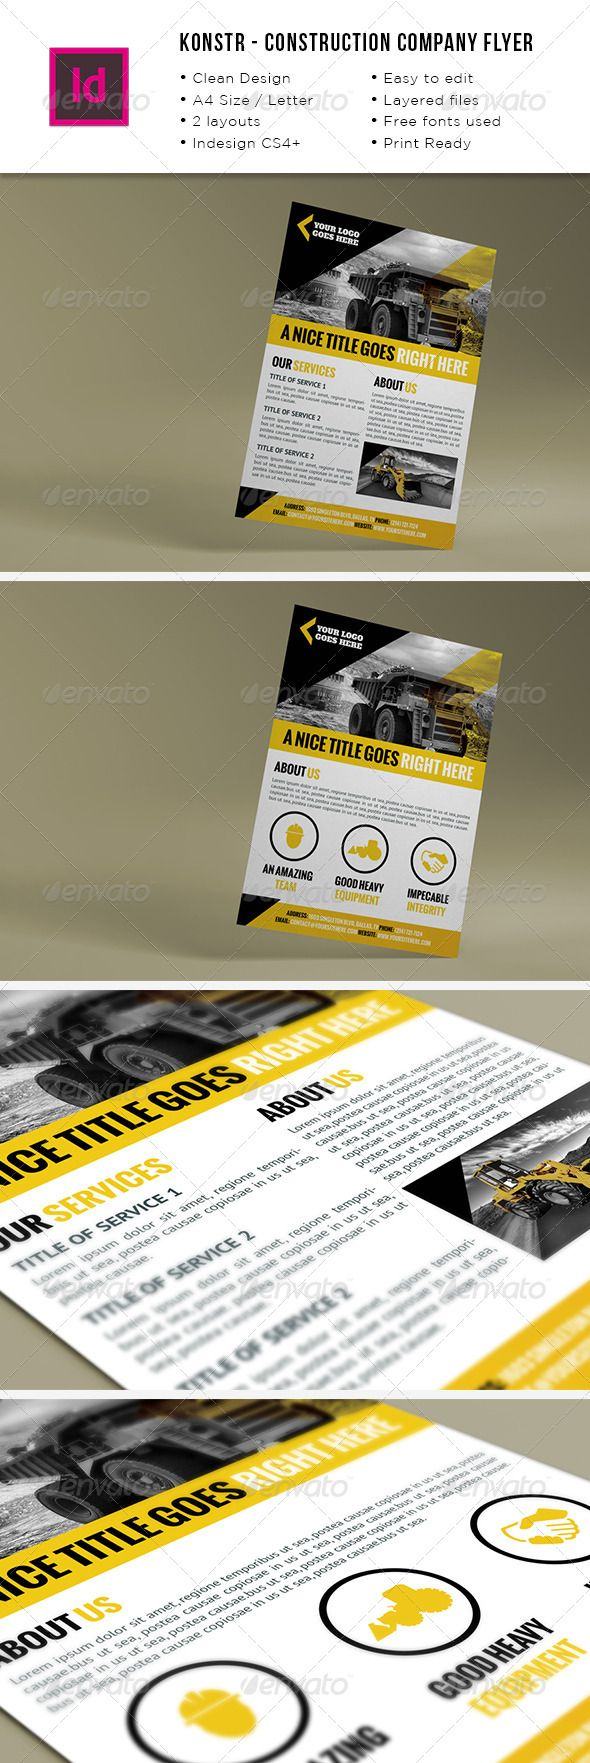 Construction Company A4 / Letter Flyer http://graphicriver.net/item/construction-company-a4-letter-flyer/8507483?ref=damiamio Construction company A4 / Letter Flyer. 2 unique designs. Fully editable .indd and .idml files. Images not included. InDesign CS4+ (IDML file) InDesign CC (INDD file) A4 Size Letter Size Bleed CMYK Easy to edit Ready for print Thanks for your interest and if you need my help with anything related to this or other designs don't hesitate to contact me. Created…